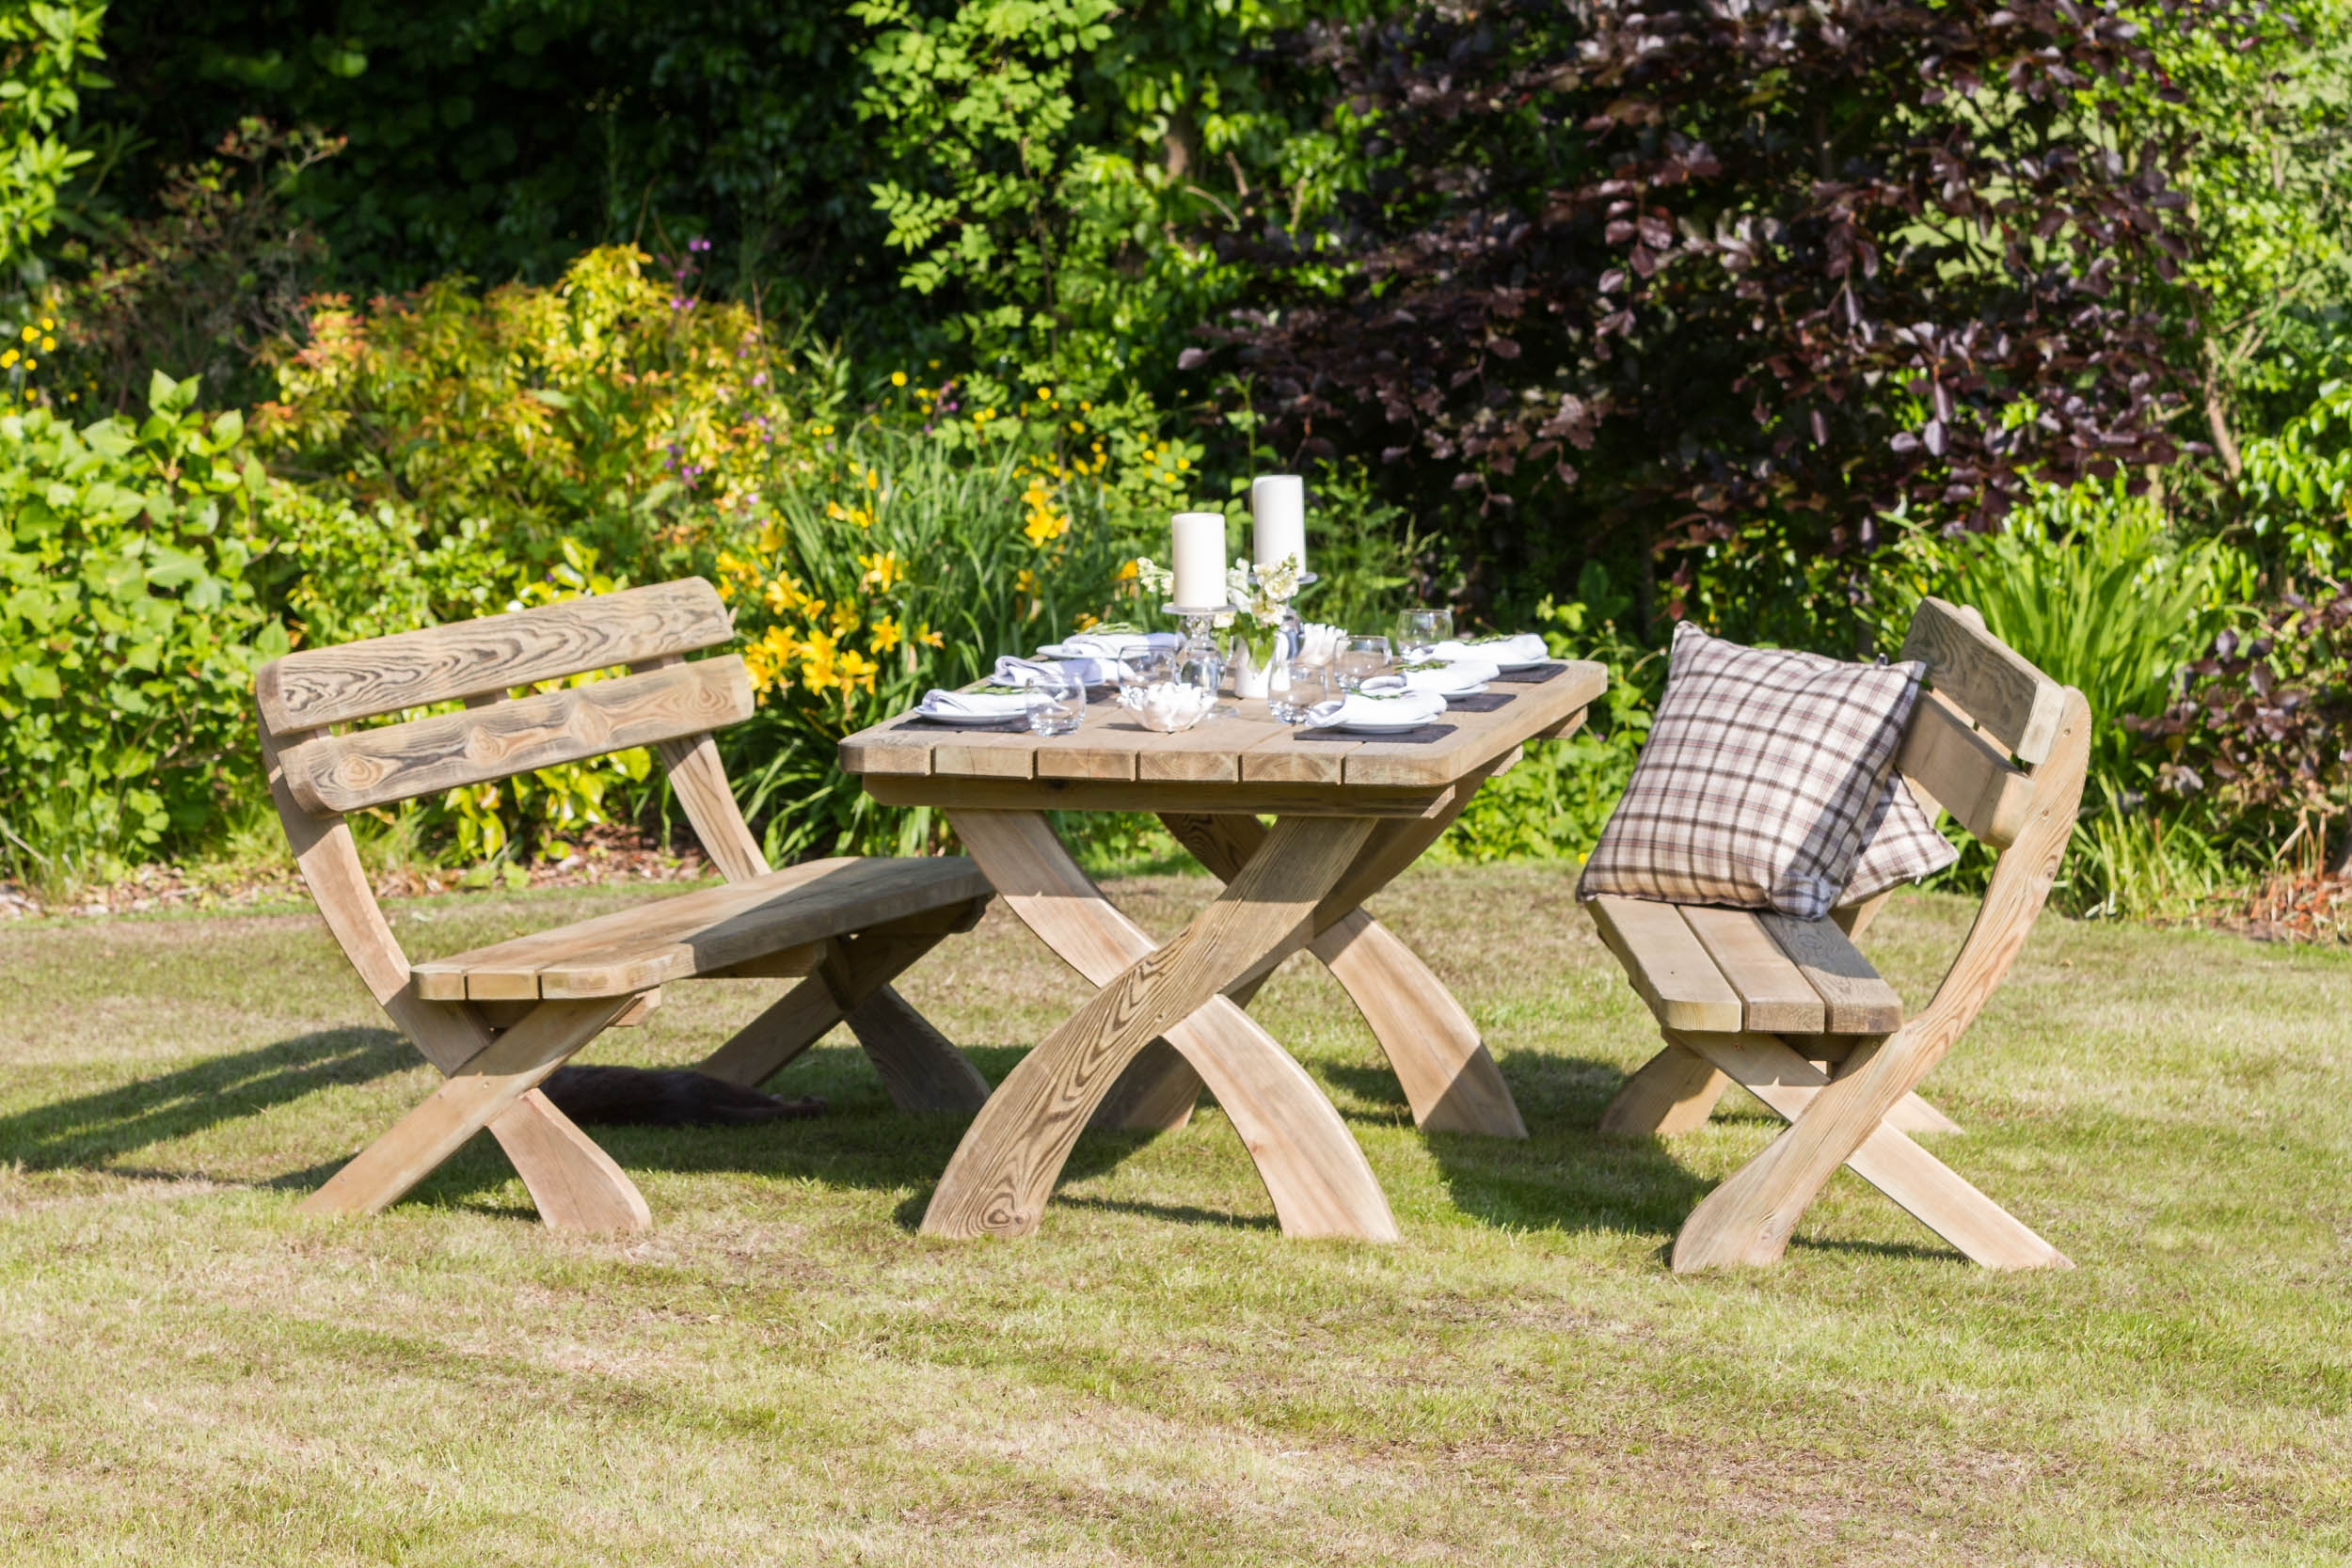 Wooden self assembly garden furniture online from Supreme Landscaping Products